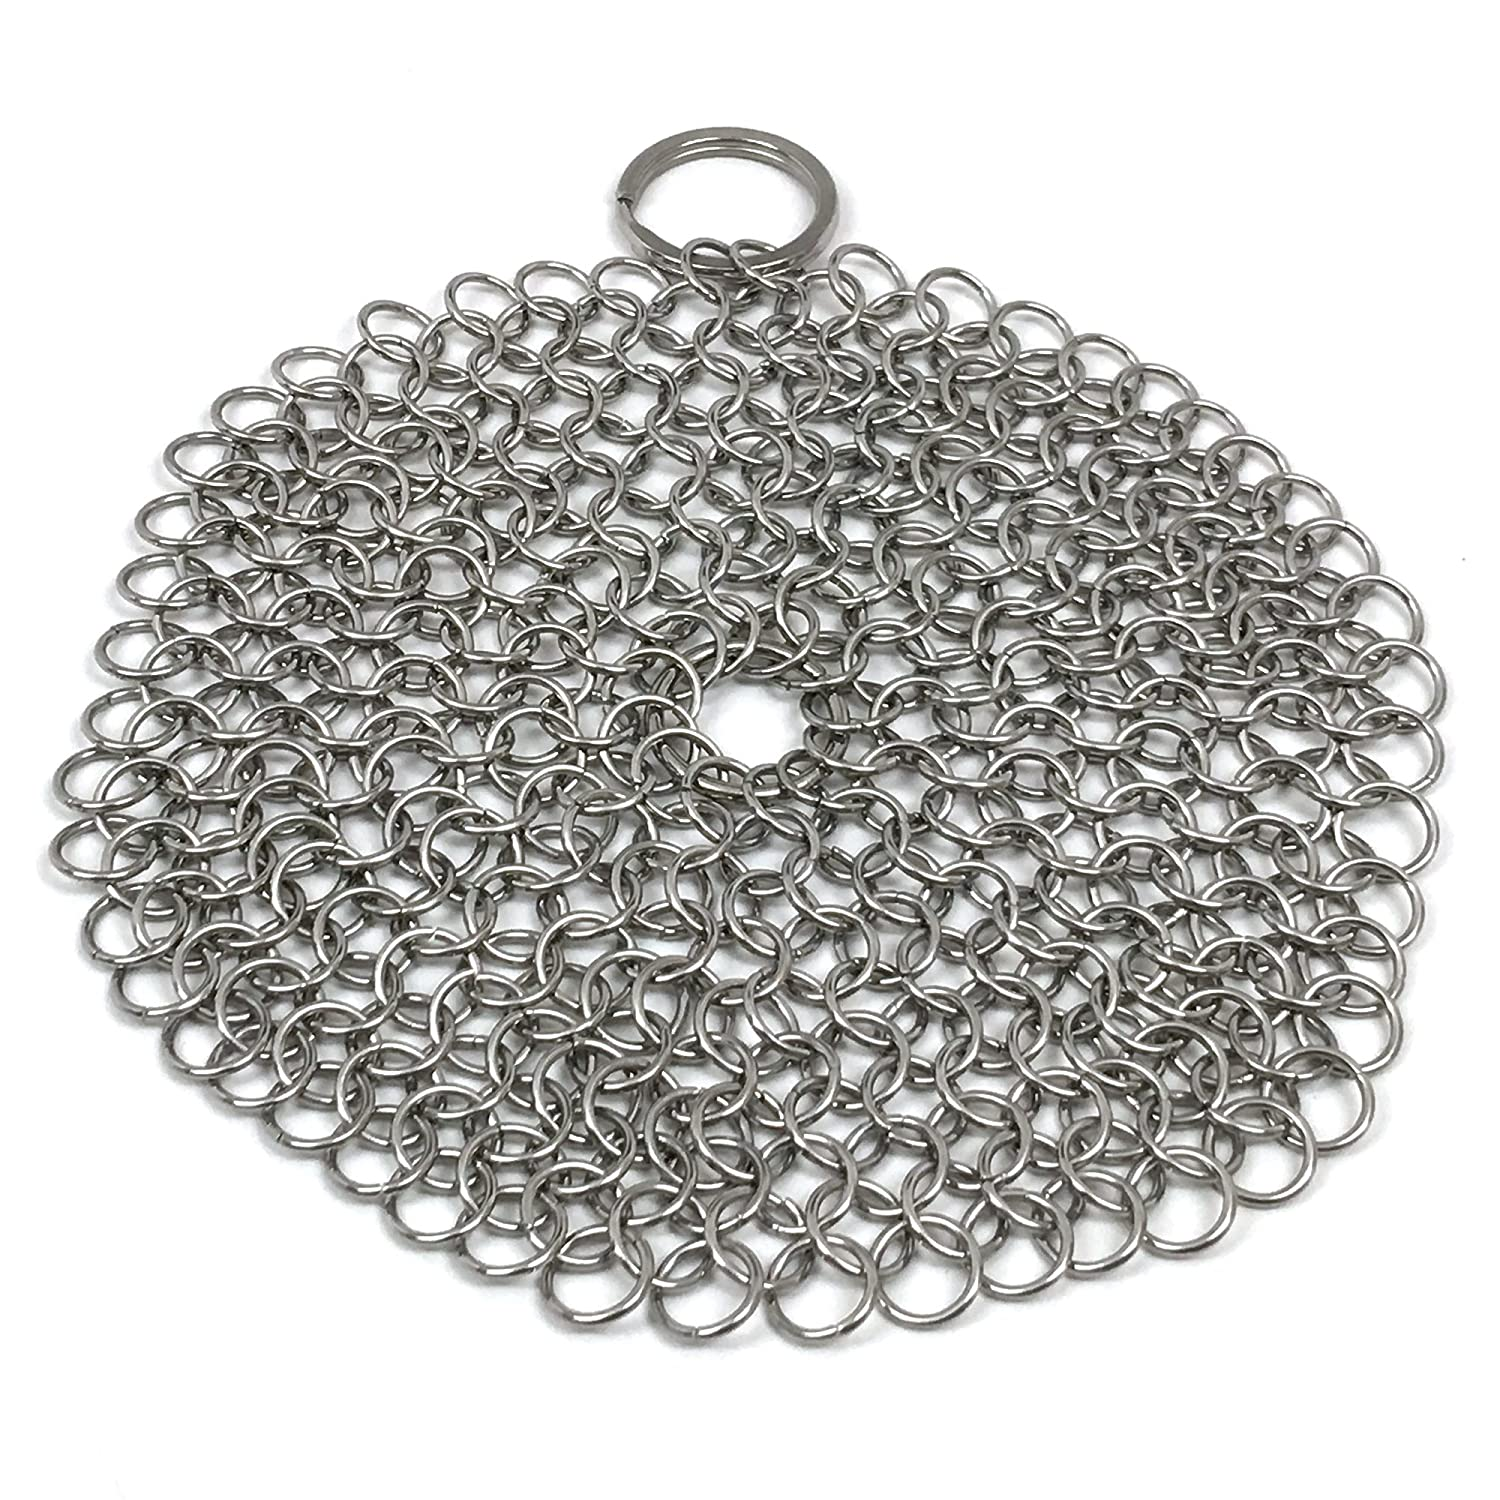 Stainless Steel Cast Iron Cleaner Chainmail Scrubber for Skillets, Griddles, Pans or Woks